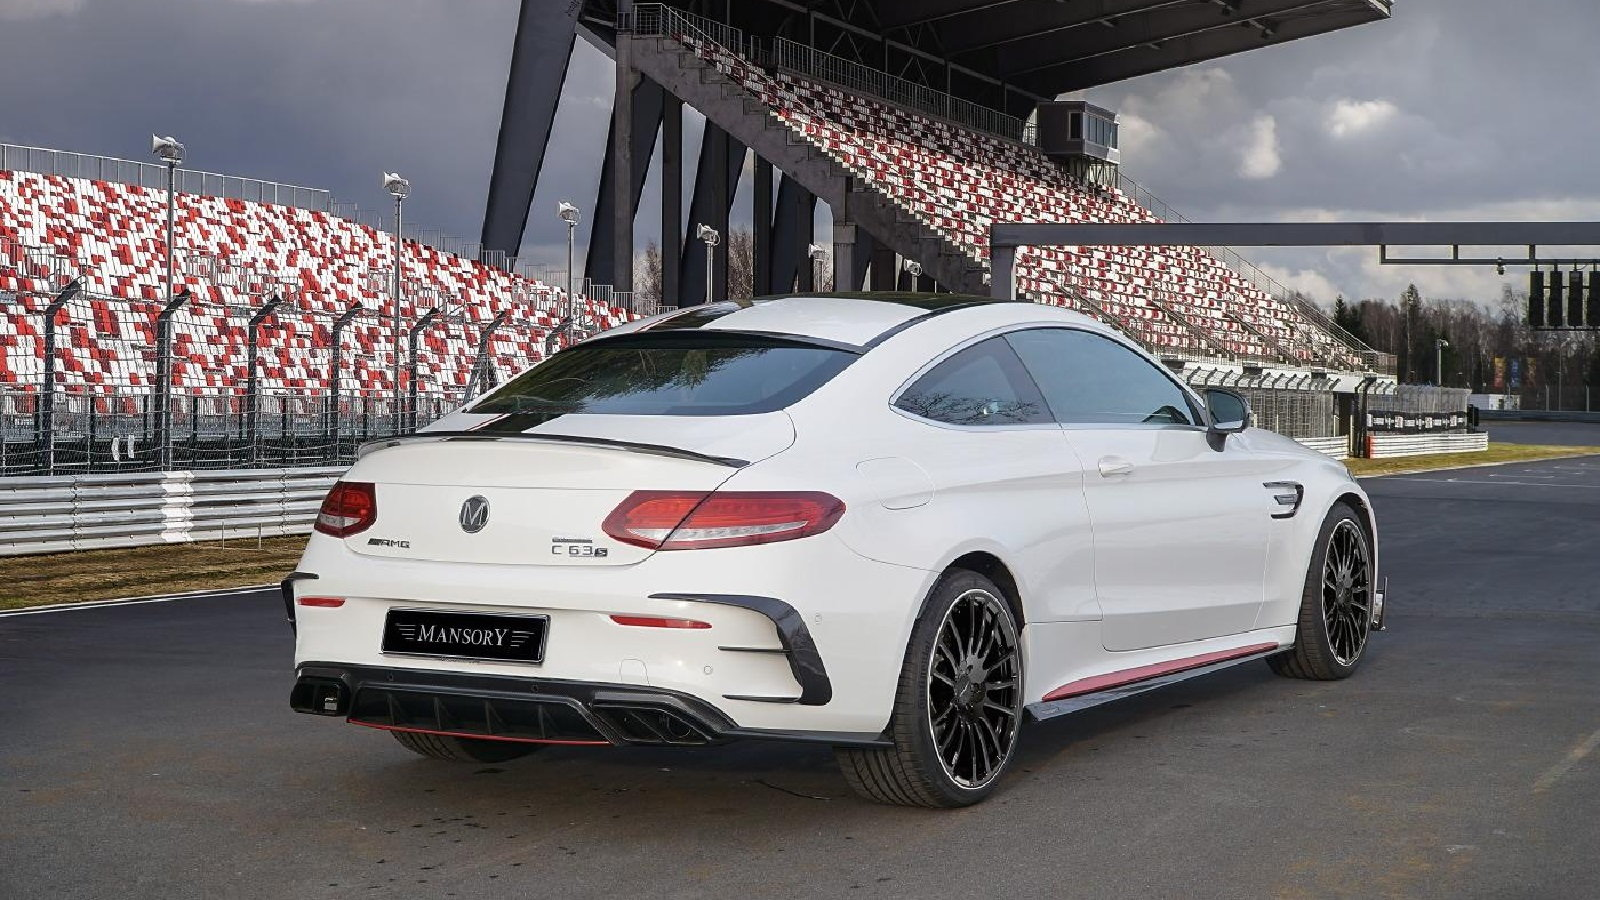 Mansory AMG C63 S Delivers 650HP of Craziness!